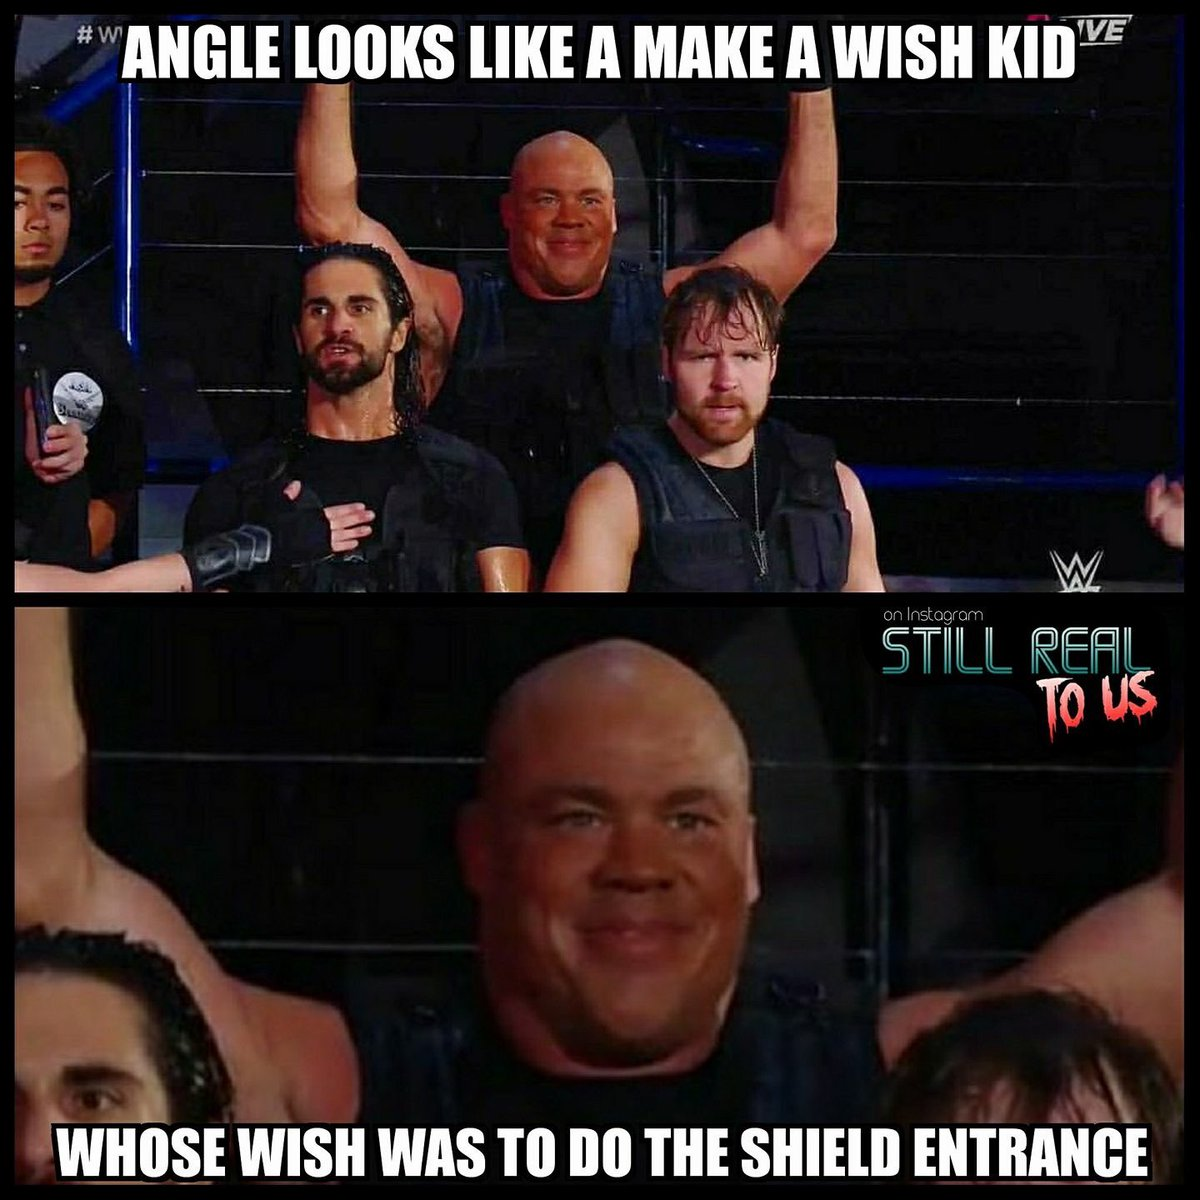 Oh it's true, it's damn true #WWE #TLC #kurtangle<br>http://pic.twitter.com/c8L45imxXk